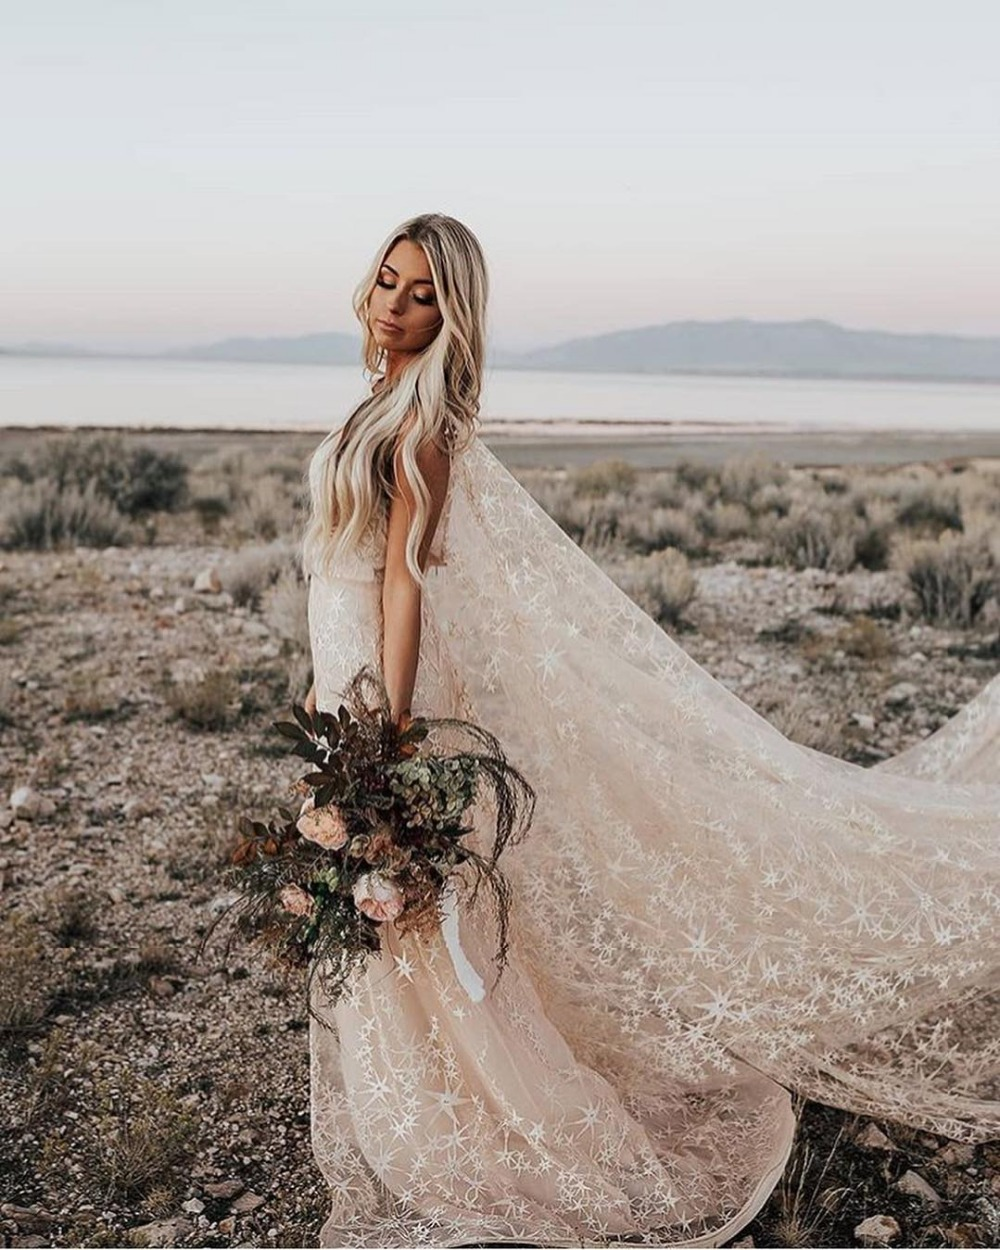 Swooning Dazzling Wedding Dresses Awesome Floral Print Star Bridal Gowns With Cape Bohemian Country Vestido De Noiva